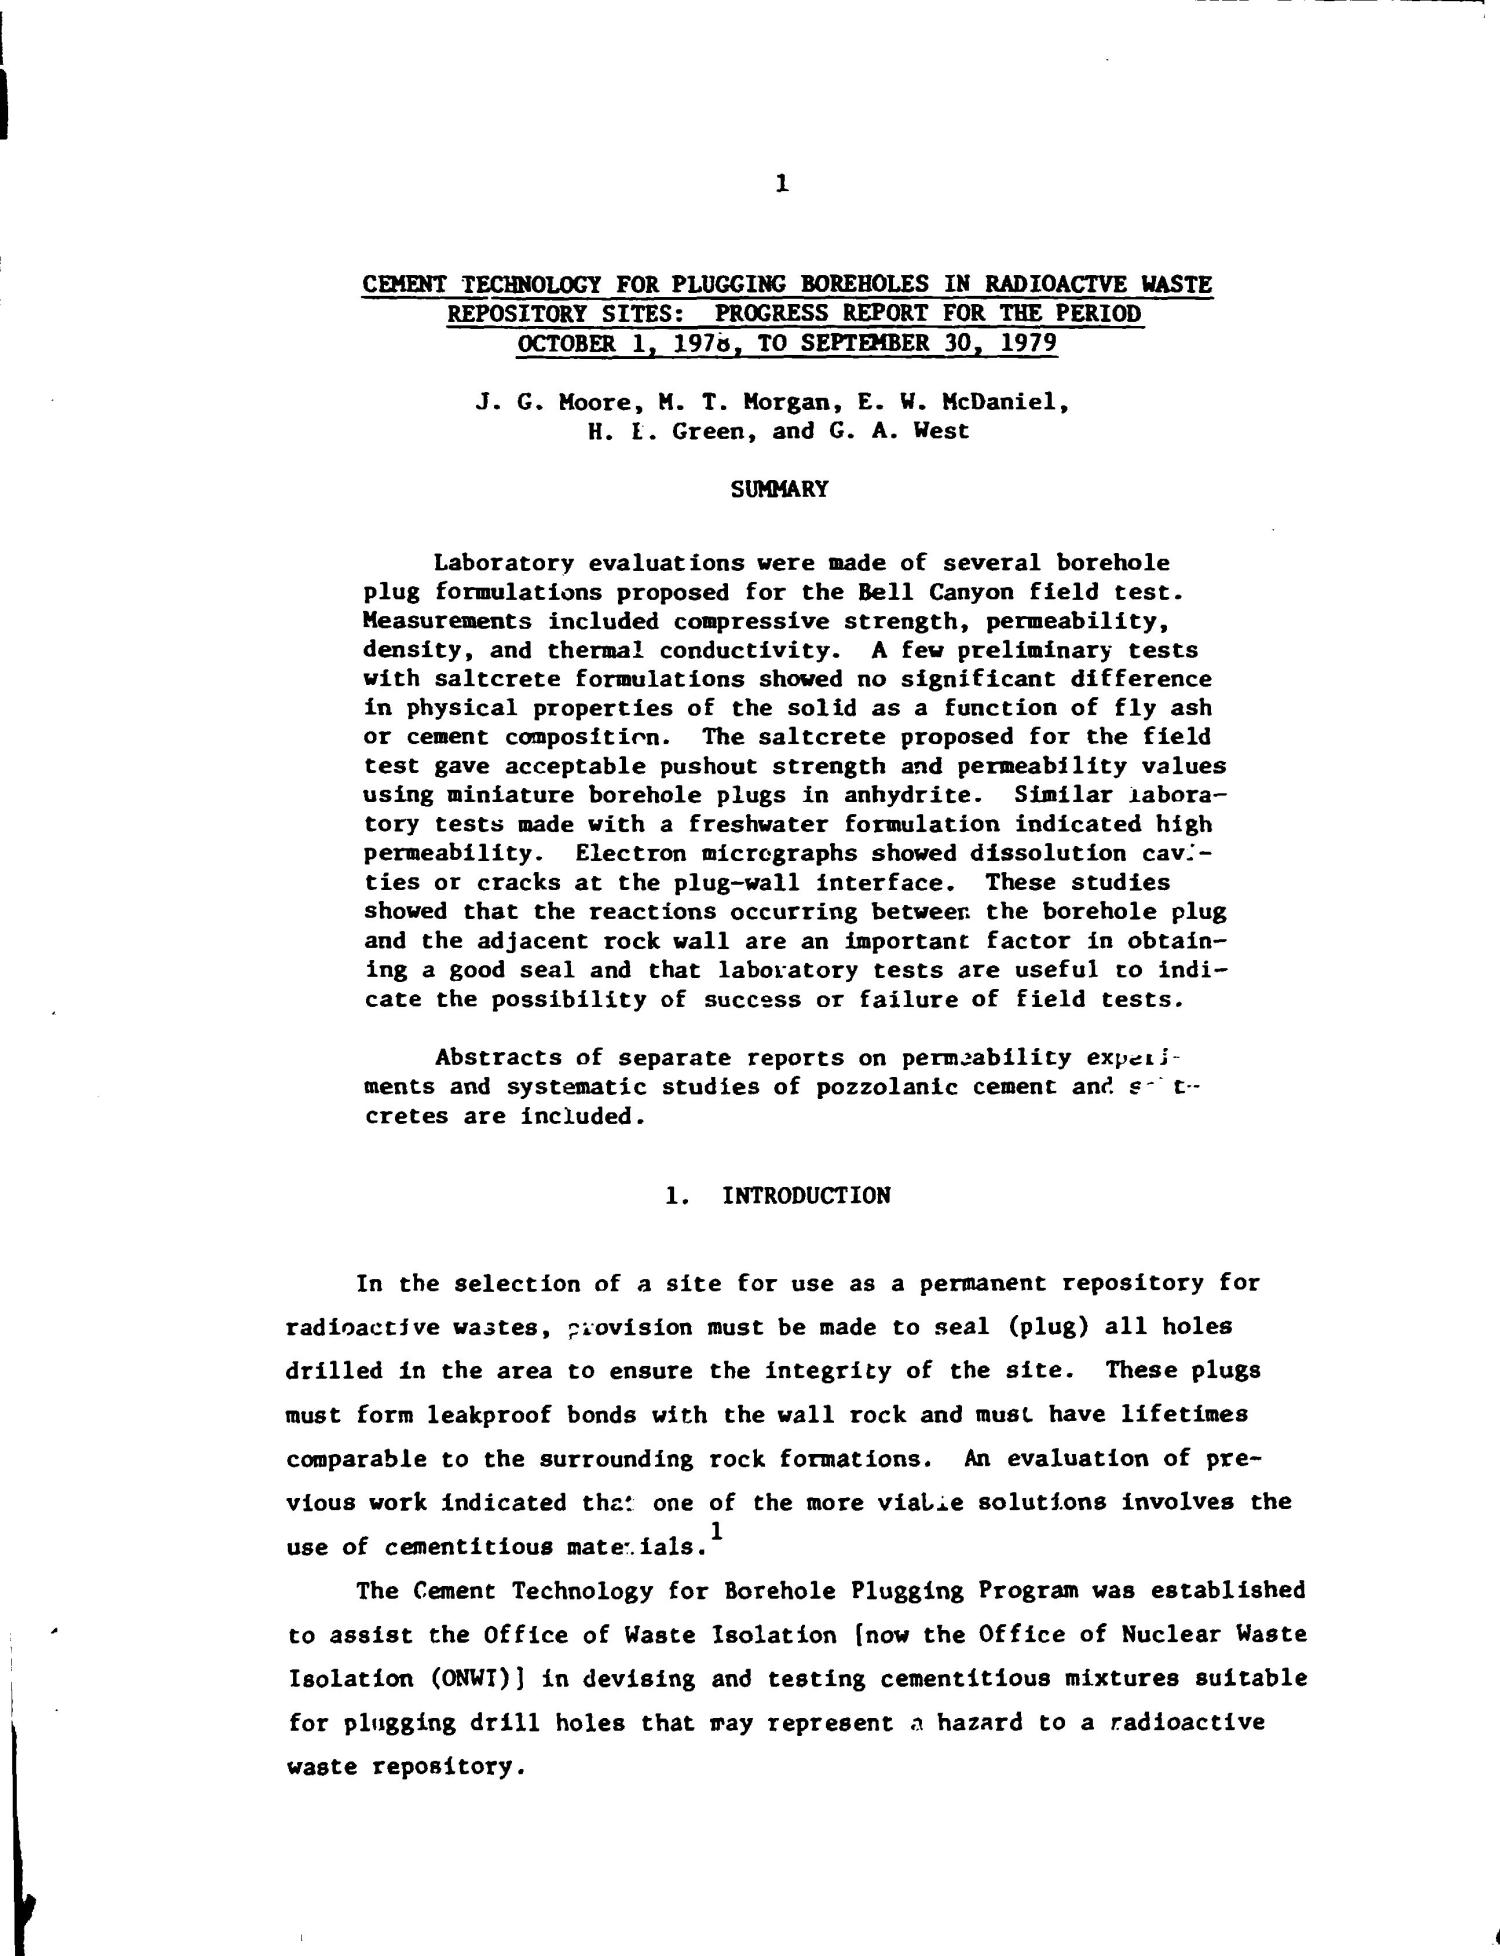 Cement technology for plugging boreholes in radioactive-waste-repository sites. Progress report, October 1, 1978-September 30, 1979                                                                                                      [Sequence #]: 4 of 21